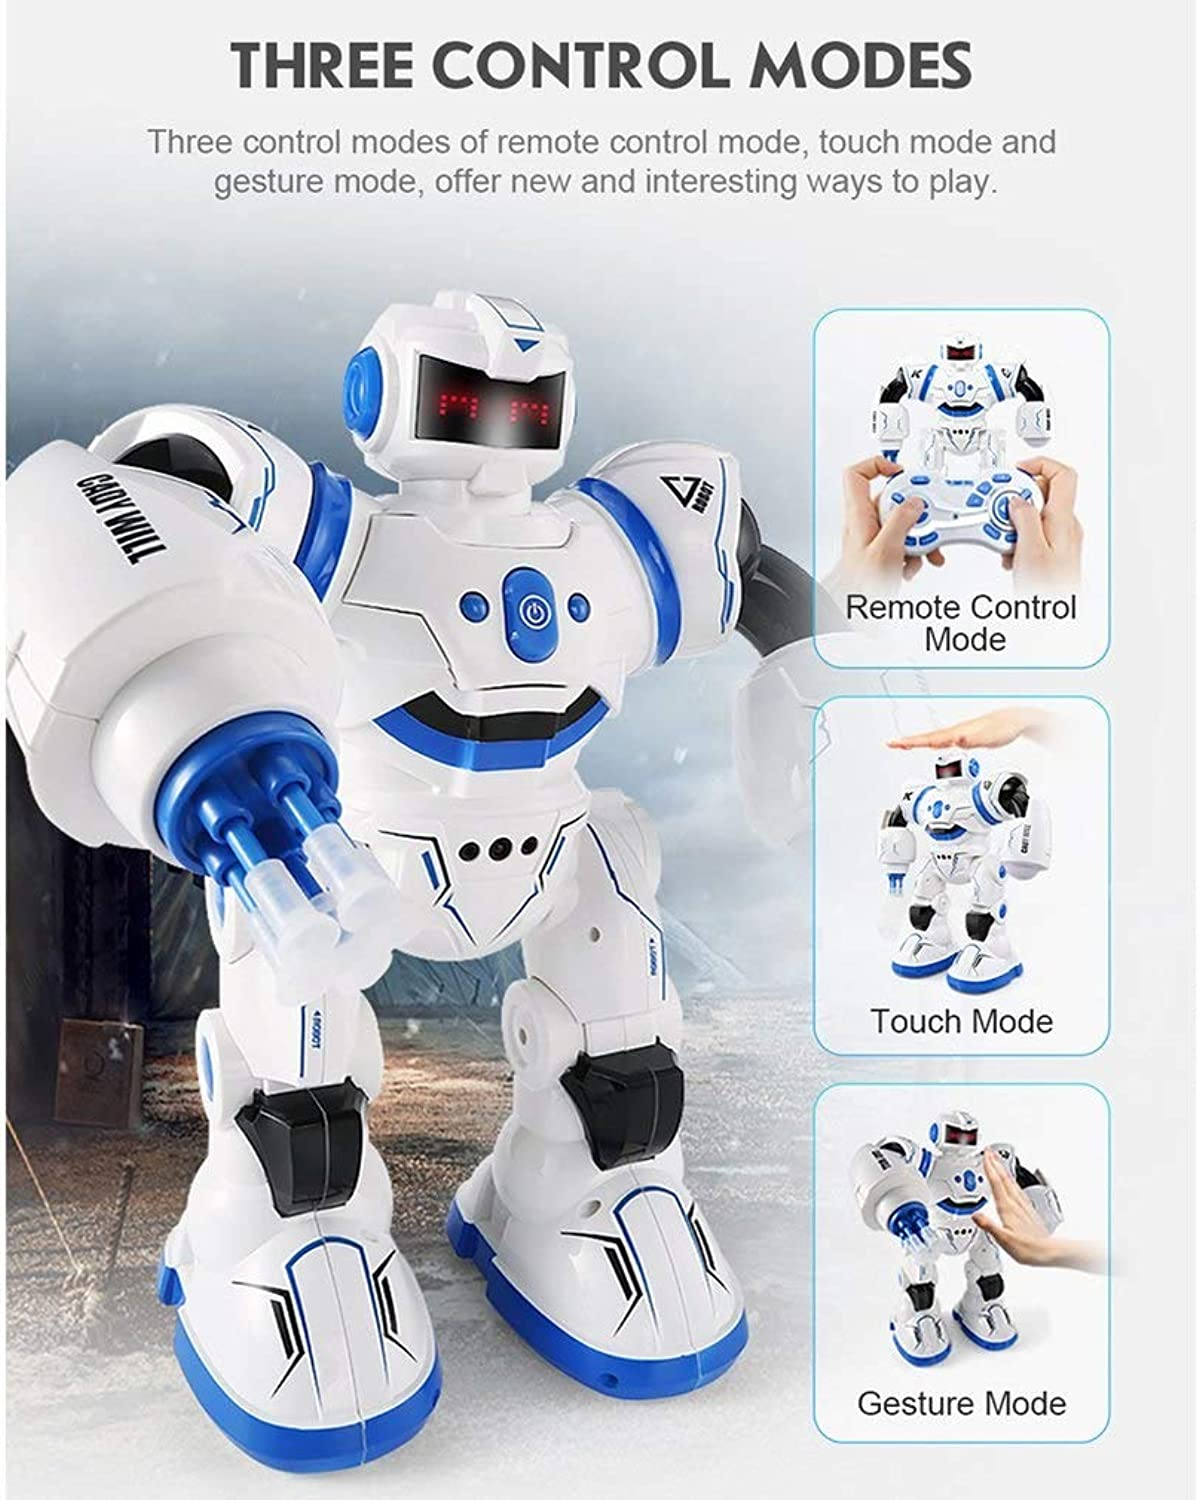 Generic JJRC R3 Programmable Defender Remote Control Early Education Intelligent Robot Multi Funtion Musical Dancing RC Roboat Xmas Gift bluee